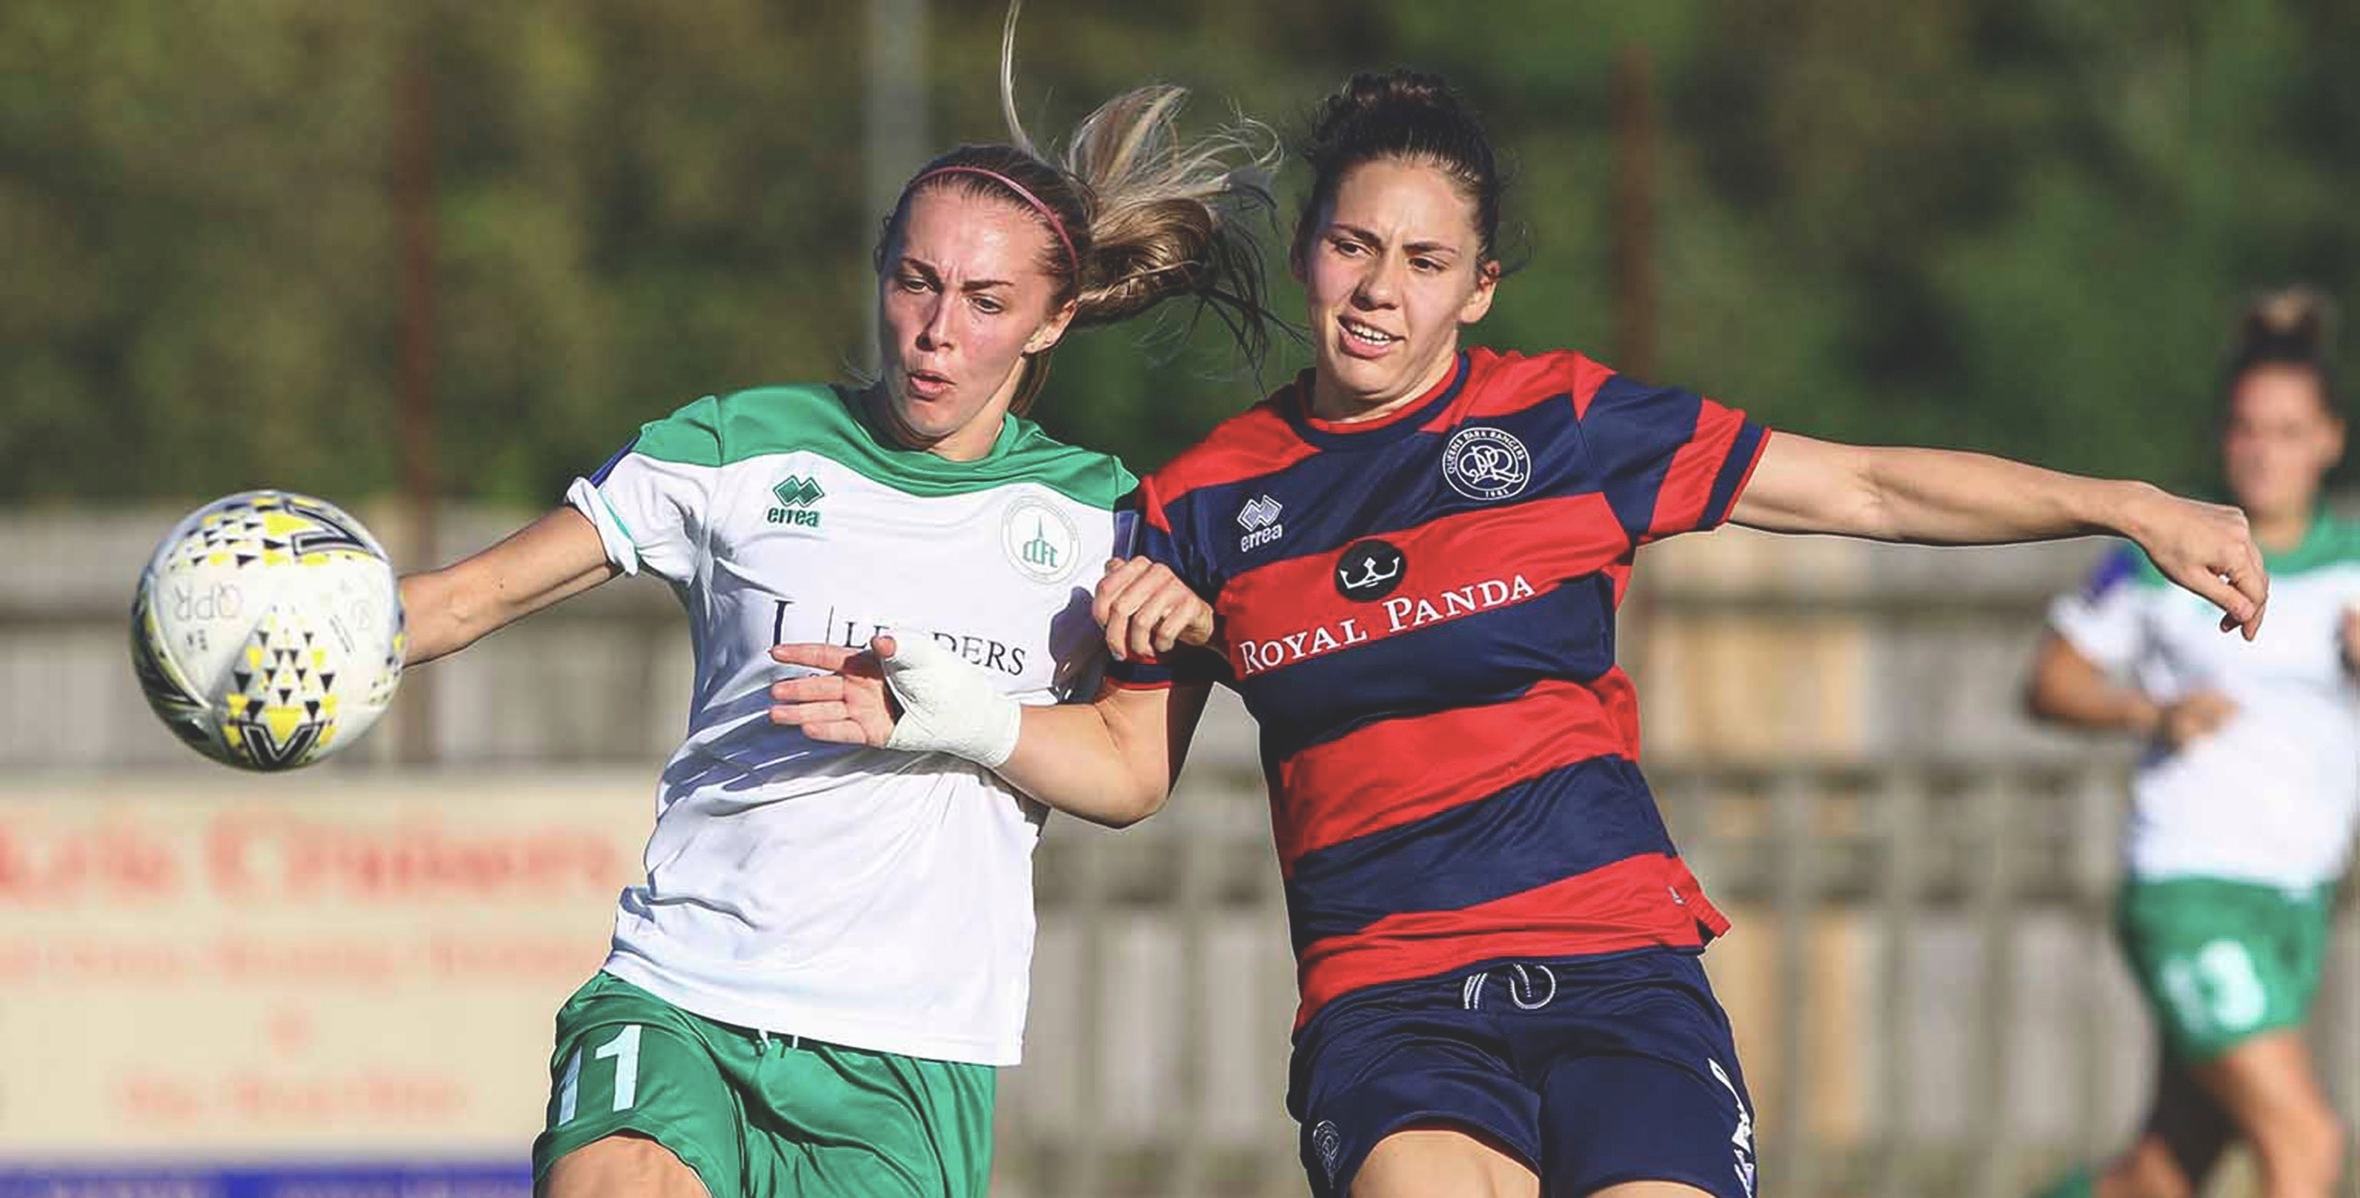 Tash Stephens (left) opened the scoring early. Photo from @QPRWFC